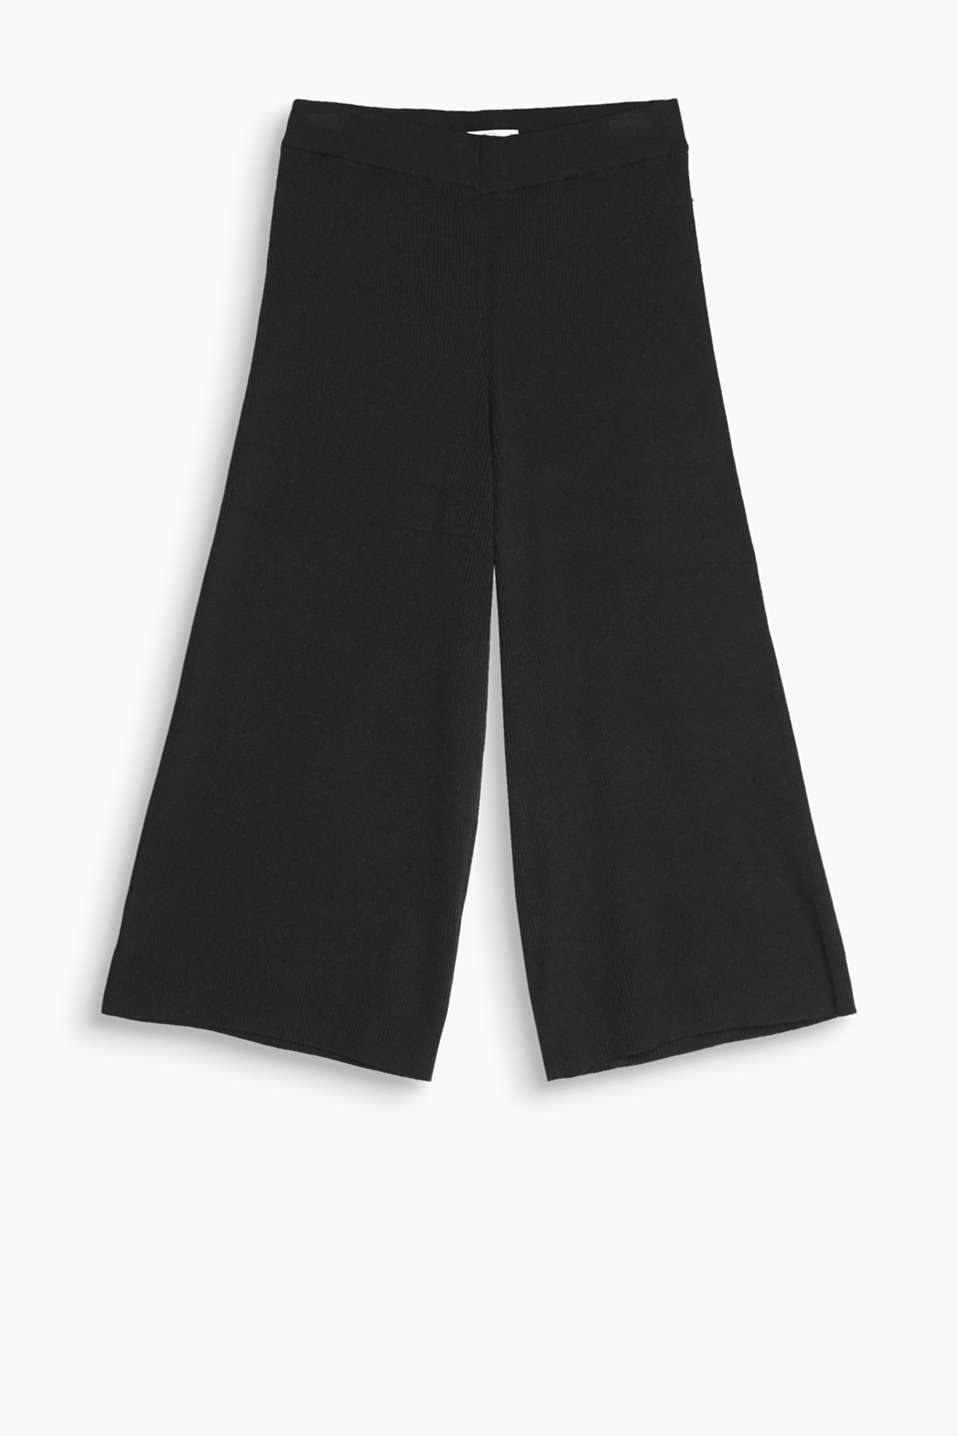 Bold knitwear statement: culottes with a sporty, ribbed texture and comfy, elasticated waistband